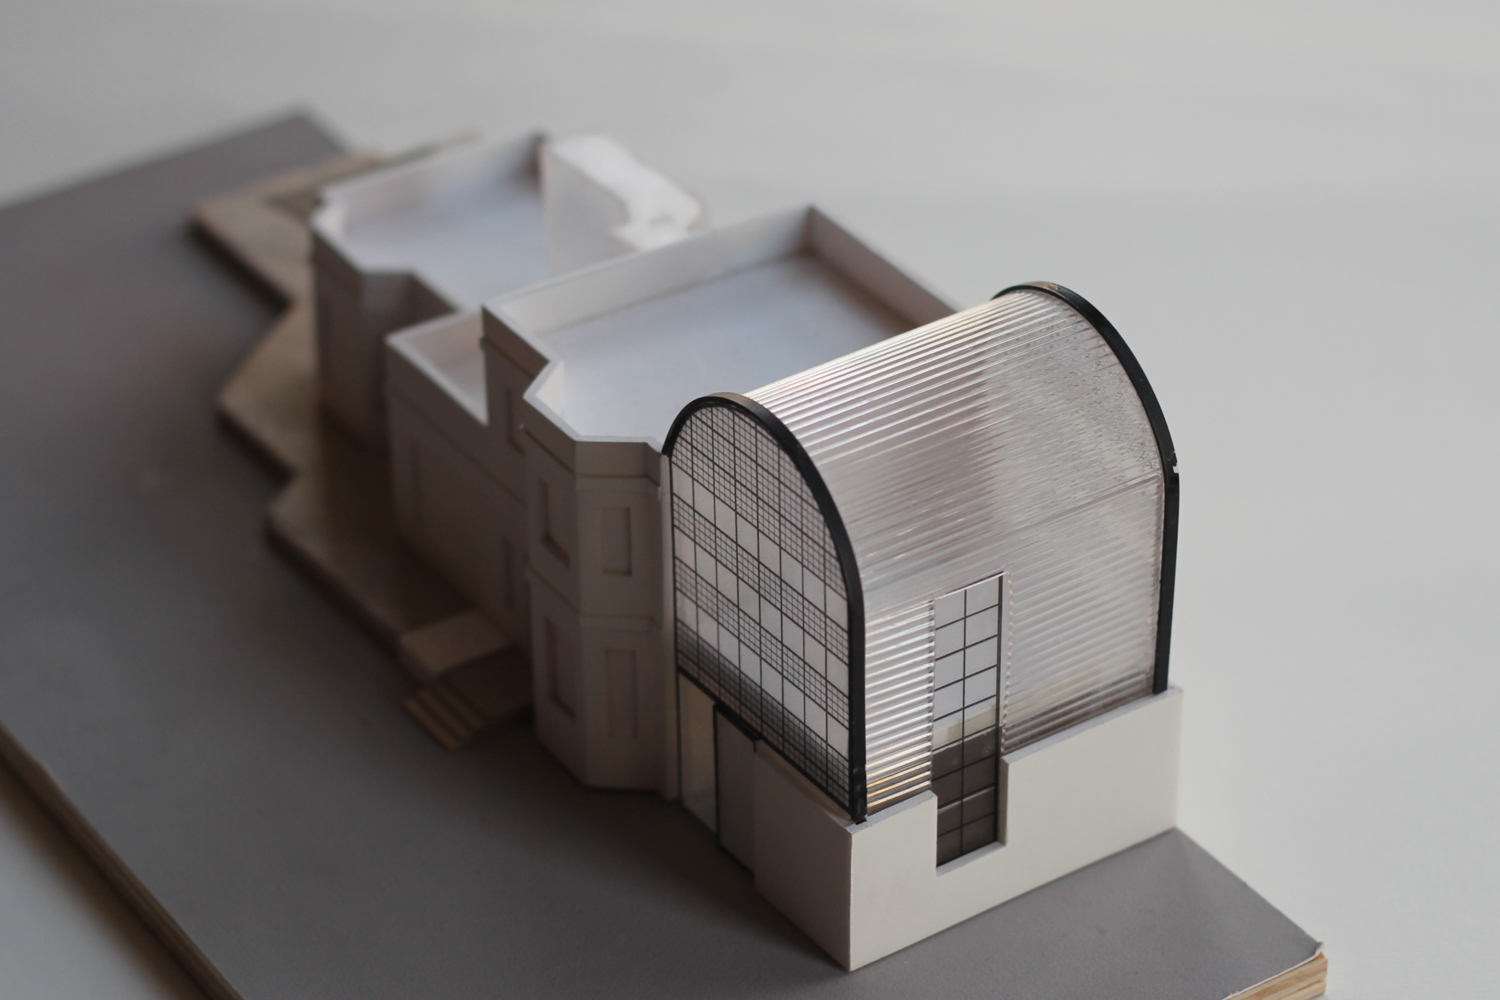 model of the proposed cemetery park lodge redevelopment by jessica sutton